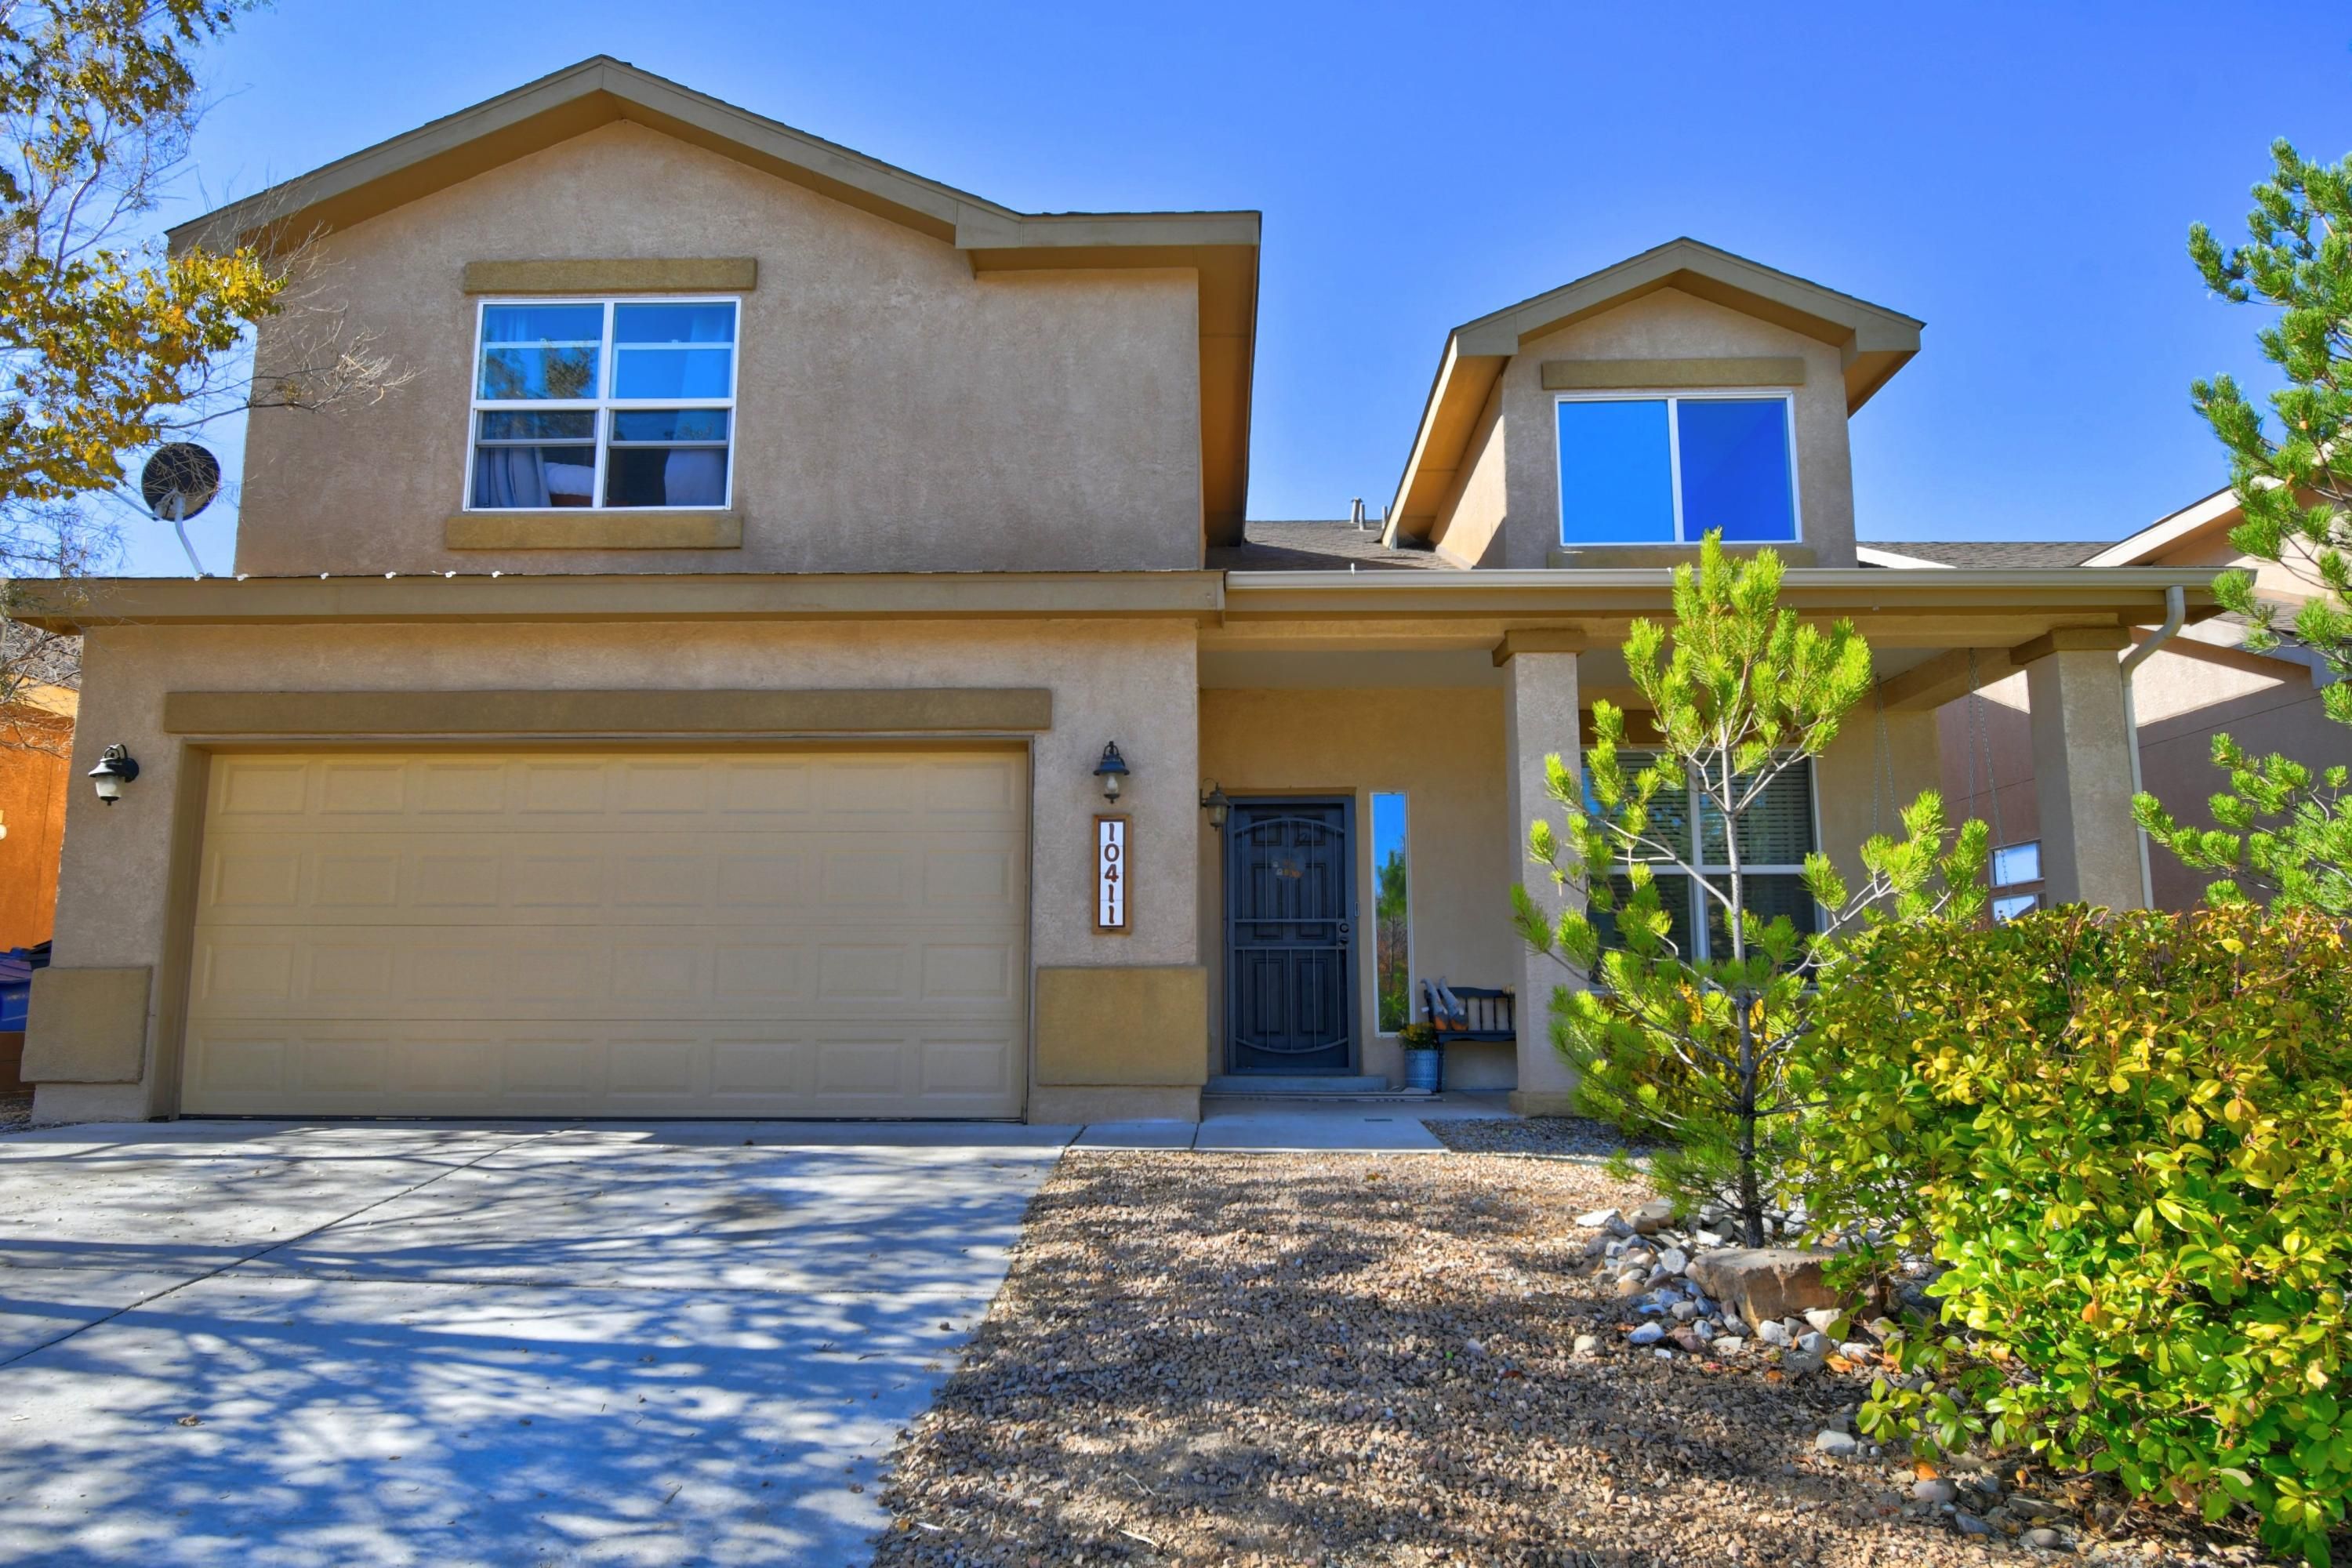 Pulte home in Ventana Ranch West. Two Living Areas plus a Loft! 3 Bedrooms, 2.5 Bathrooms, and a 2 Car Garage. Spacious Owner's Suite with an en suite bathroom and 2 closets, plus a balcony! Landscaped backyard with well maintained grass plus 2 decks and a shed! A/C unit updated July 2019. Updated Kitchen appliances - just over a year old!